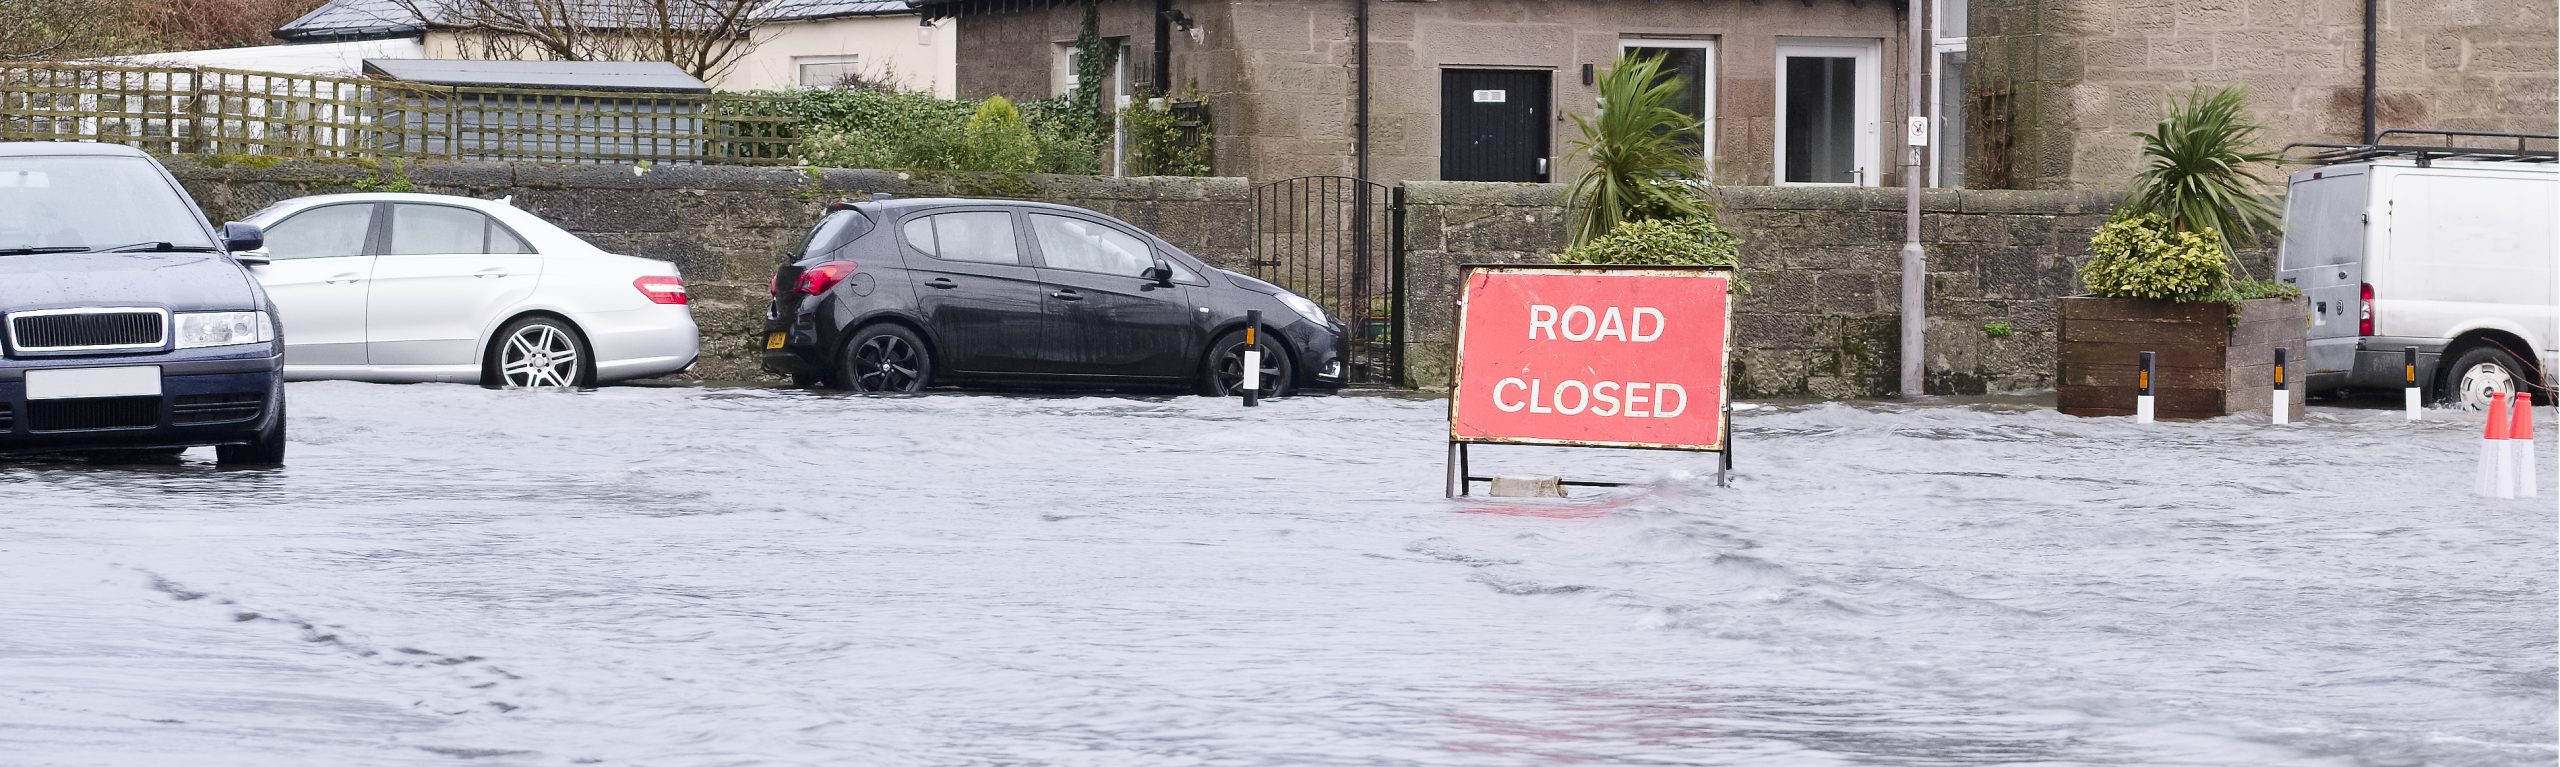 Road flood closed sign under deep water during bad extreme heavy rain storm weather UK